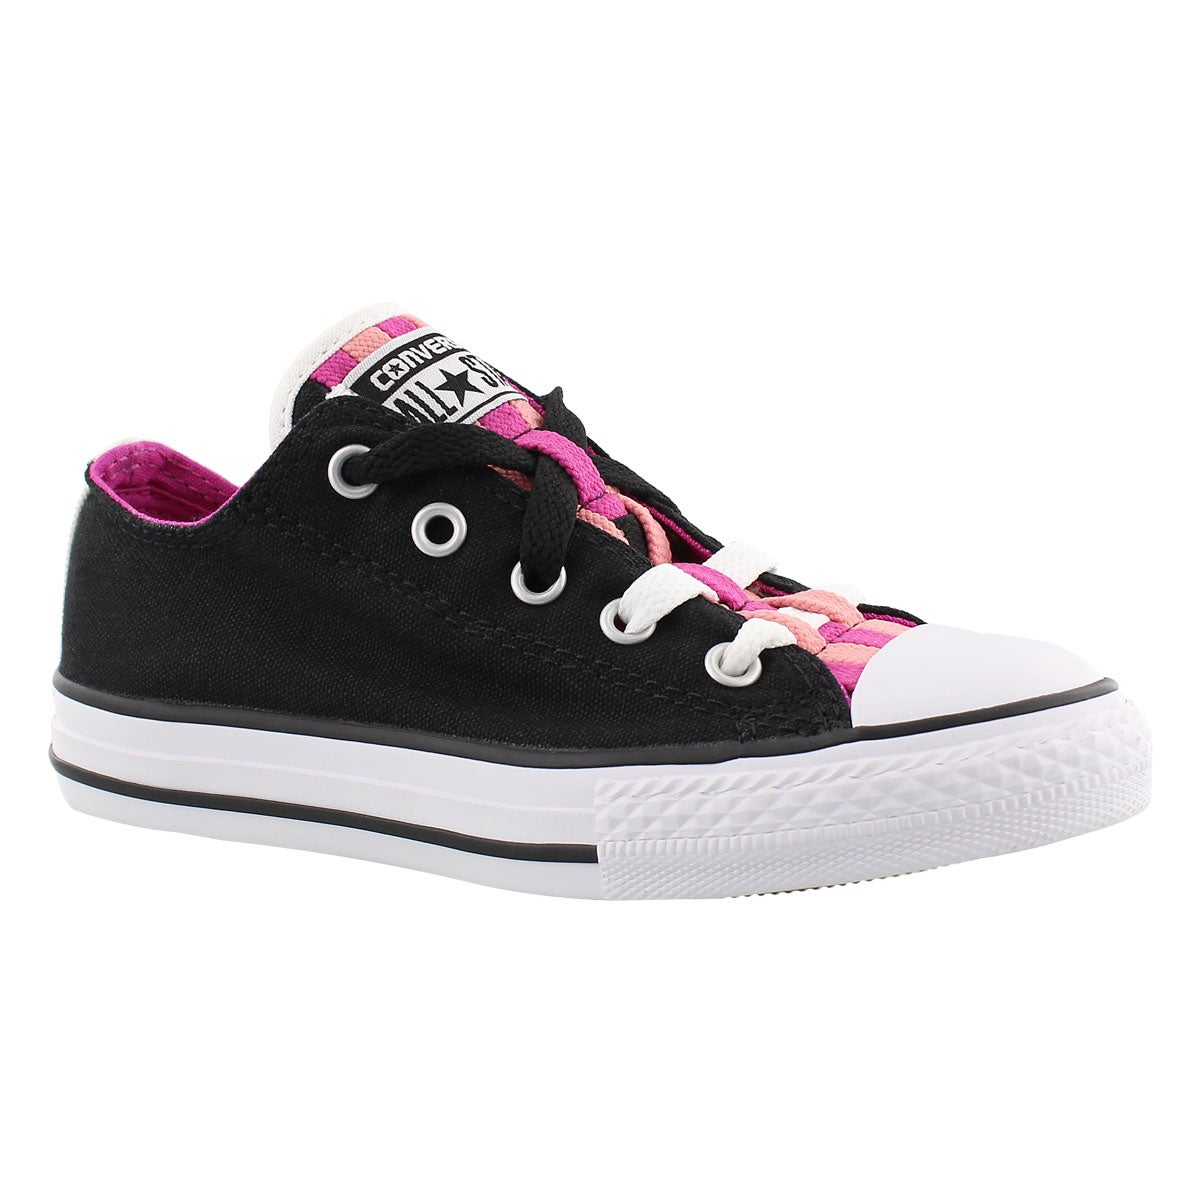 Girls' CT ALL STAR LOOPHOLES CANVAS blk sneakers